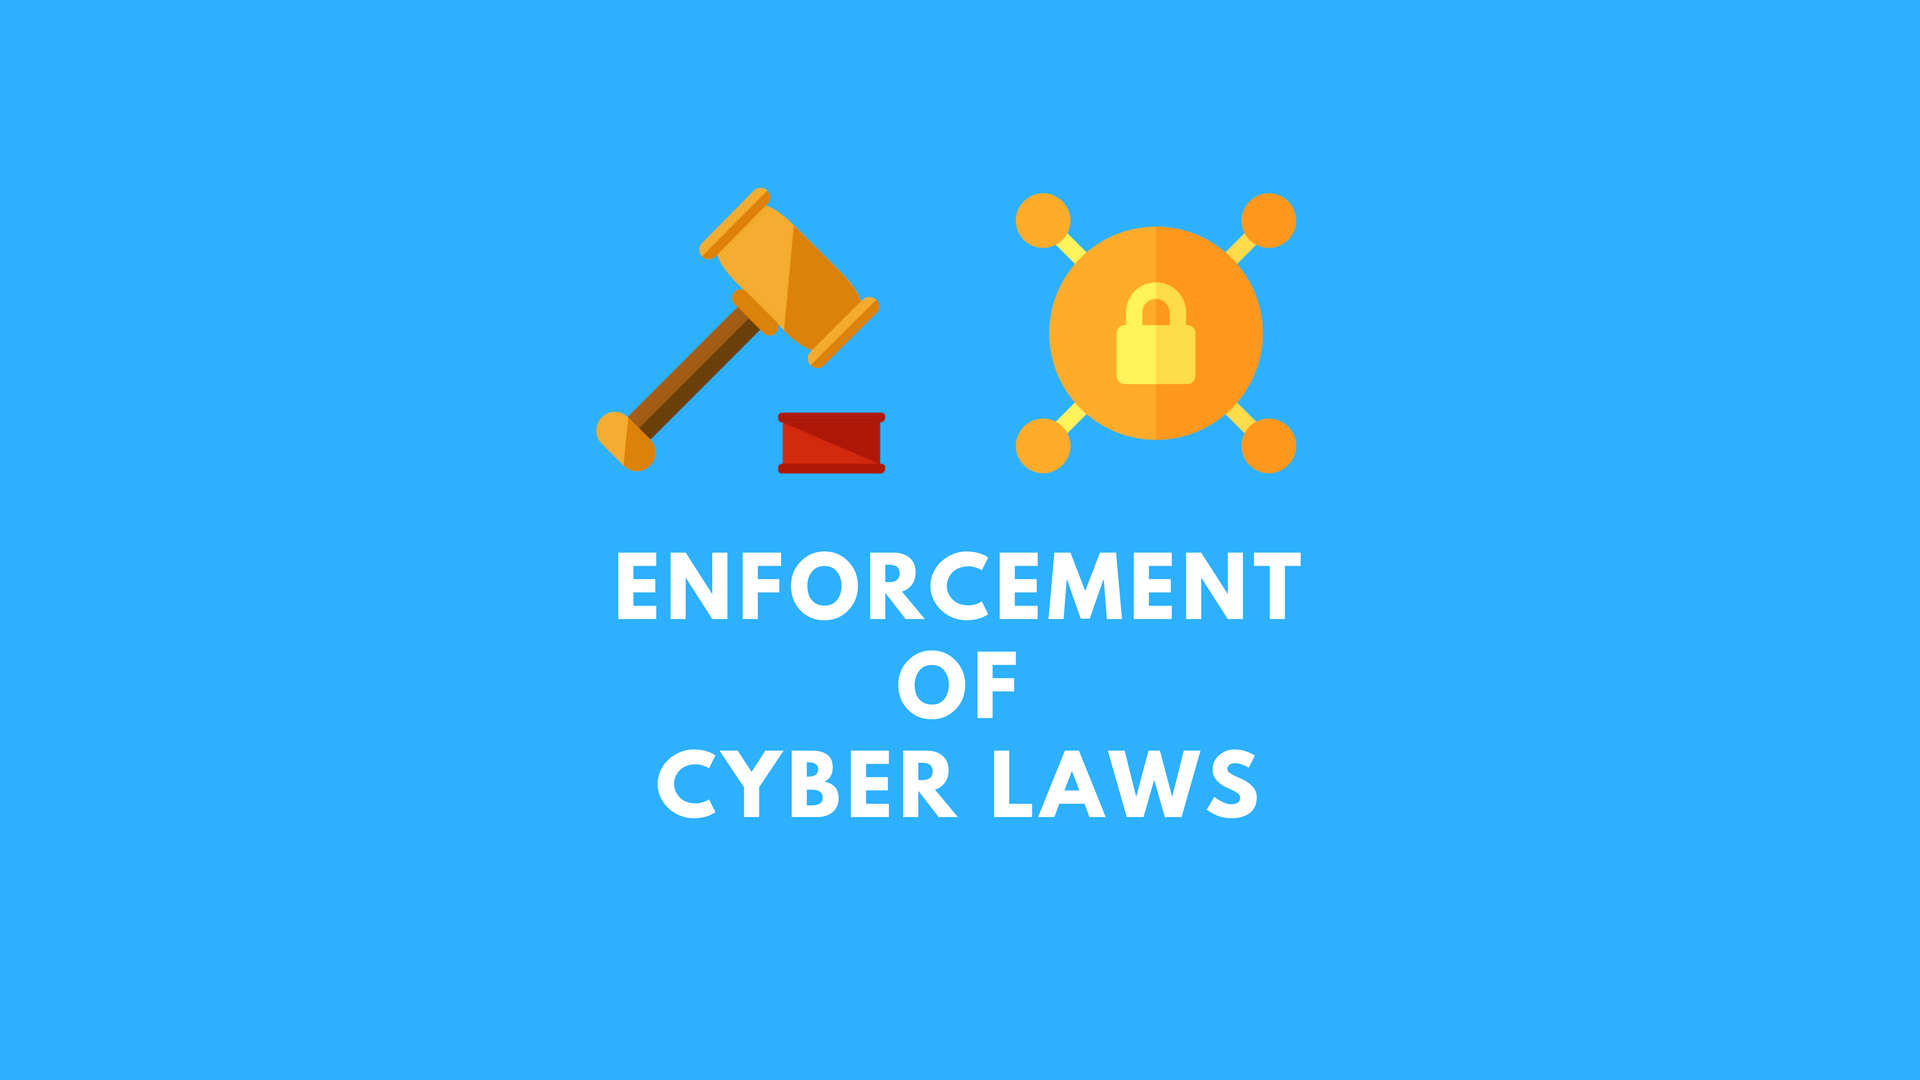 Enforcement of Cyber Laws - Regulating the Cyberspace